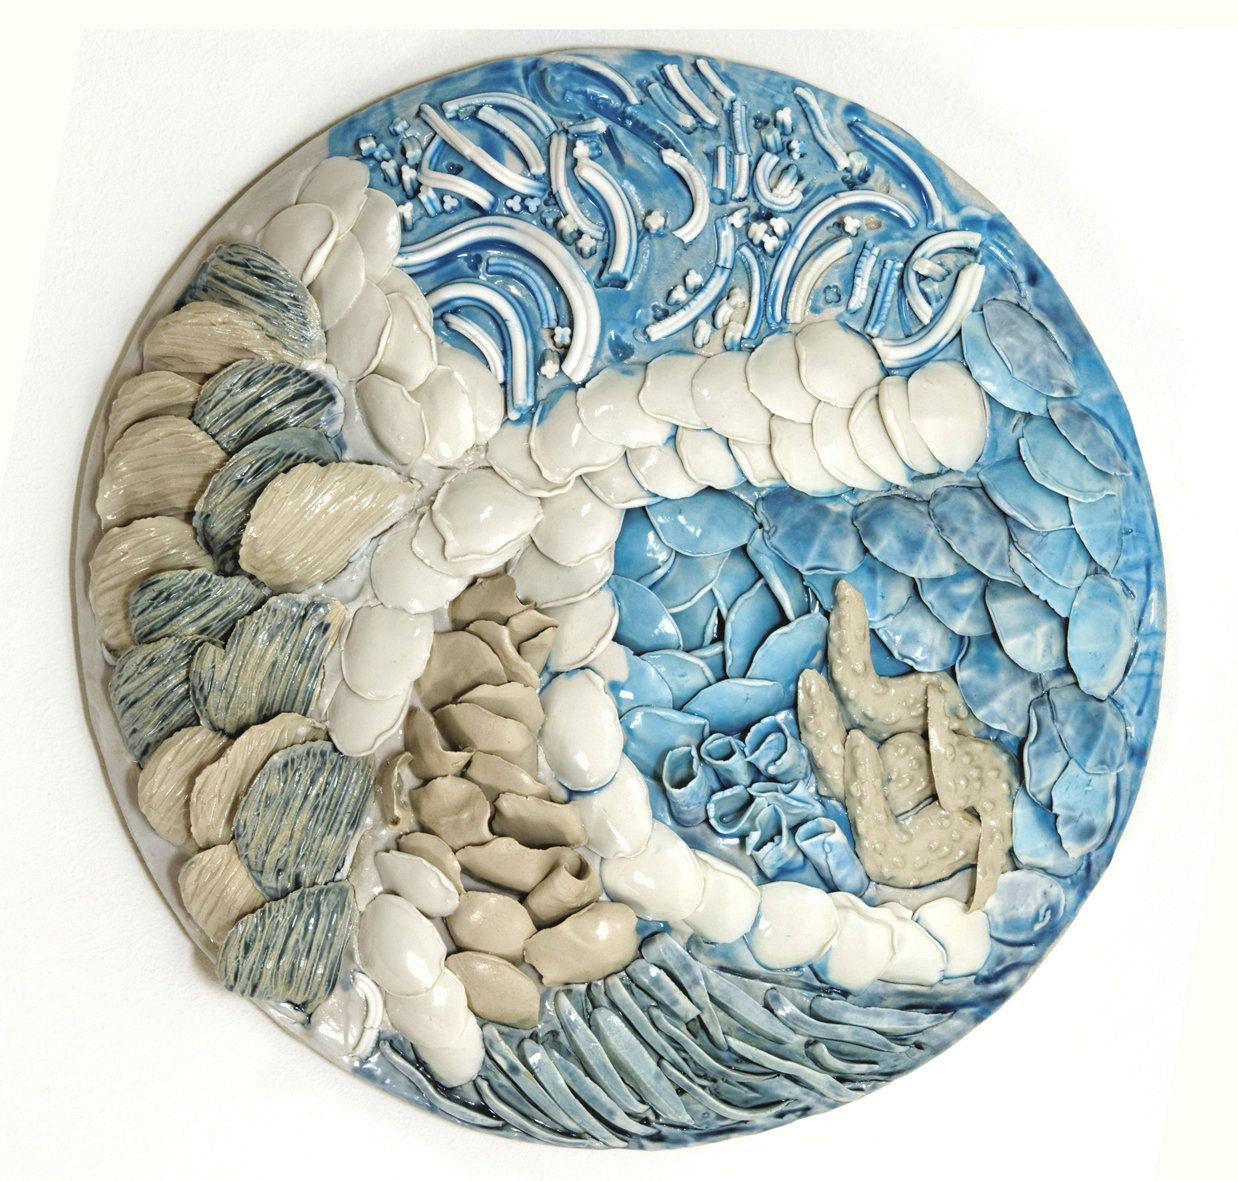 Belginus porcelain wall sculptureroundd wall artcontemporary